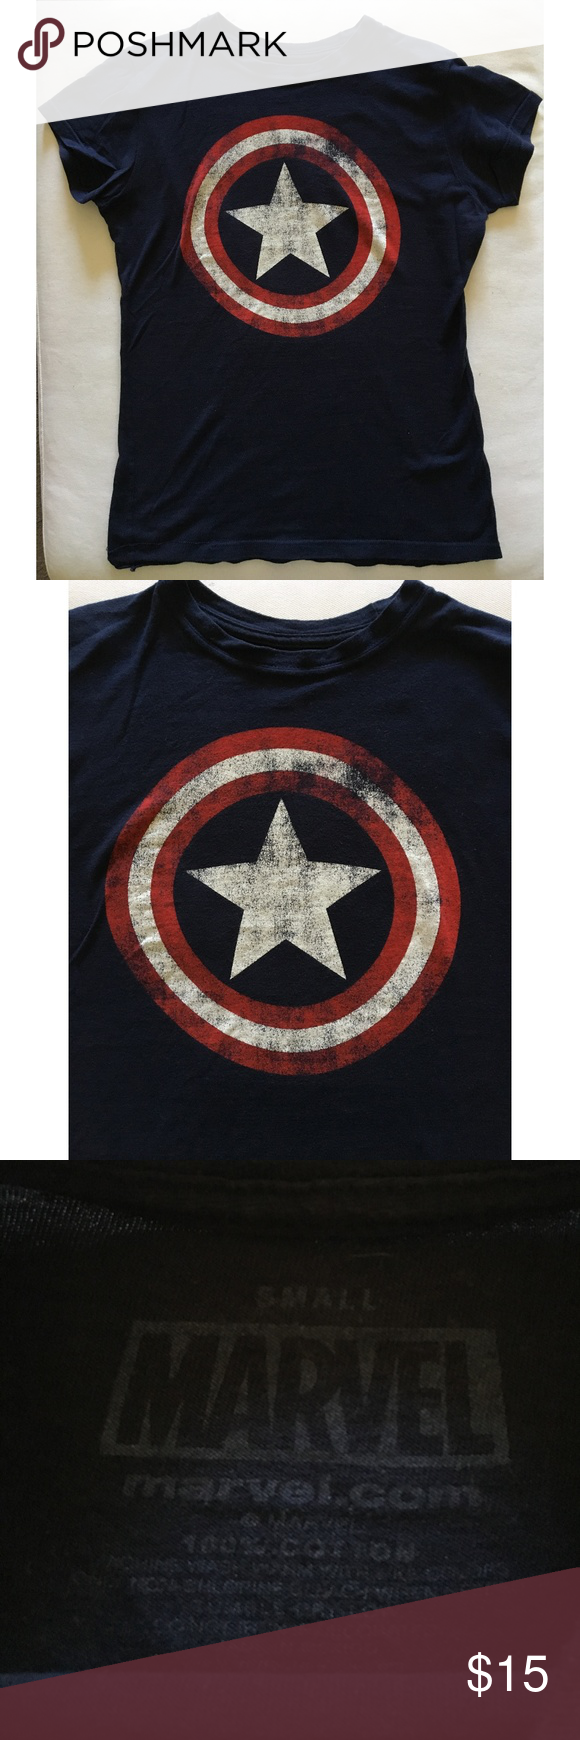 2bde3d8cd MARVEL CAPTAIN AMERICA LADIES TEE NAVY W/LOGO By Marvel, official  merchandise, this